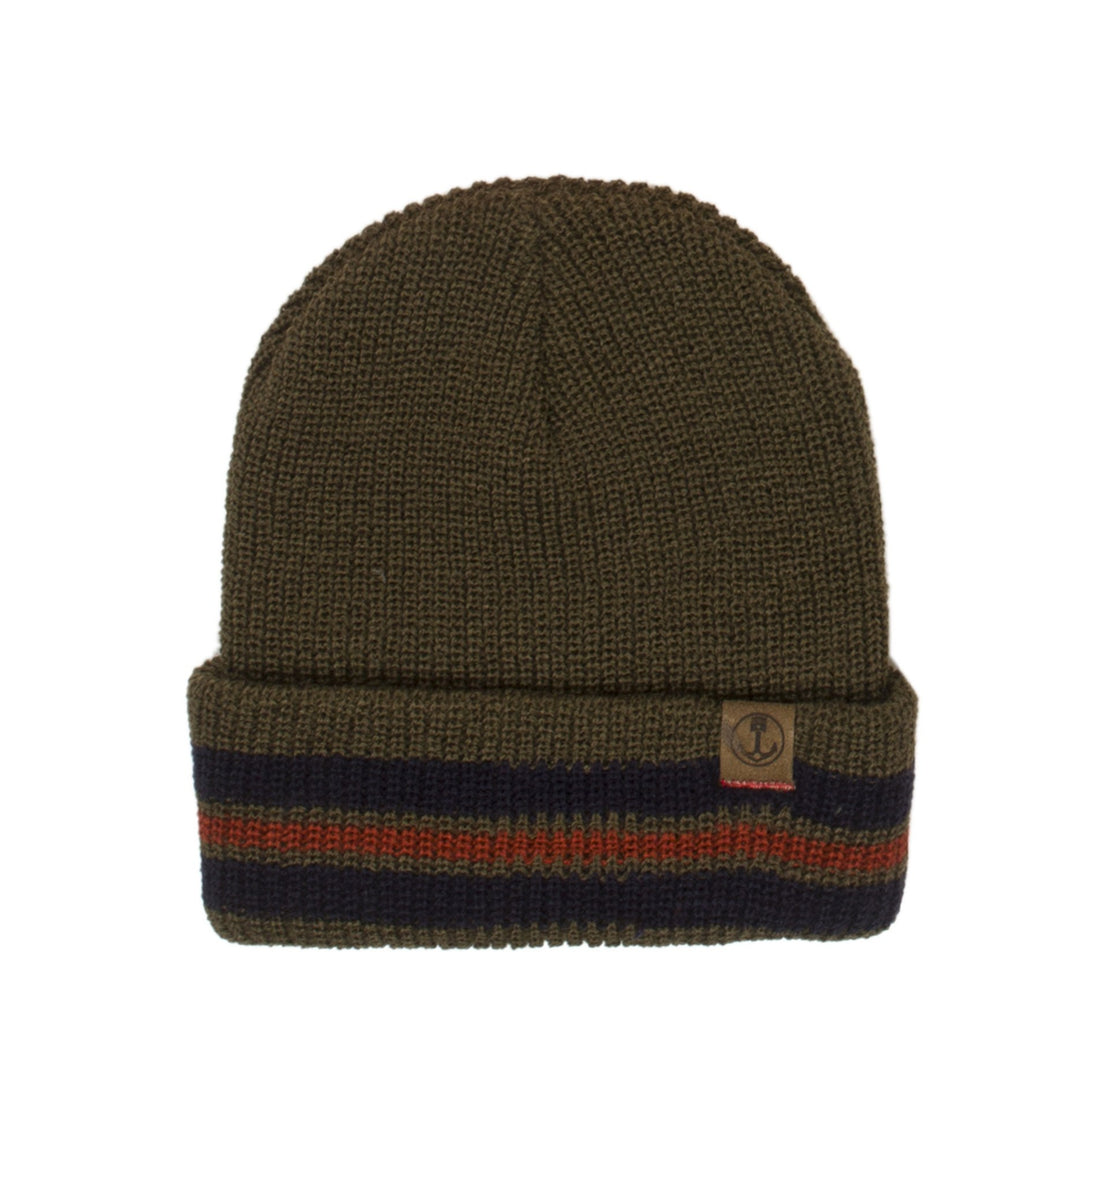 INR Palmer Beanie - Headwear - Iron and Resin